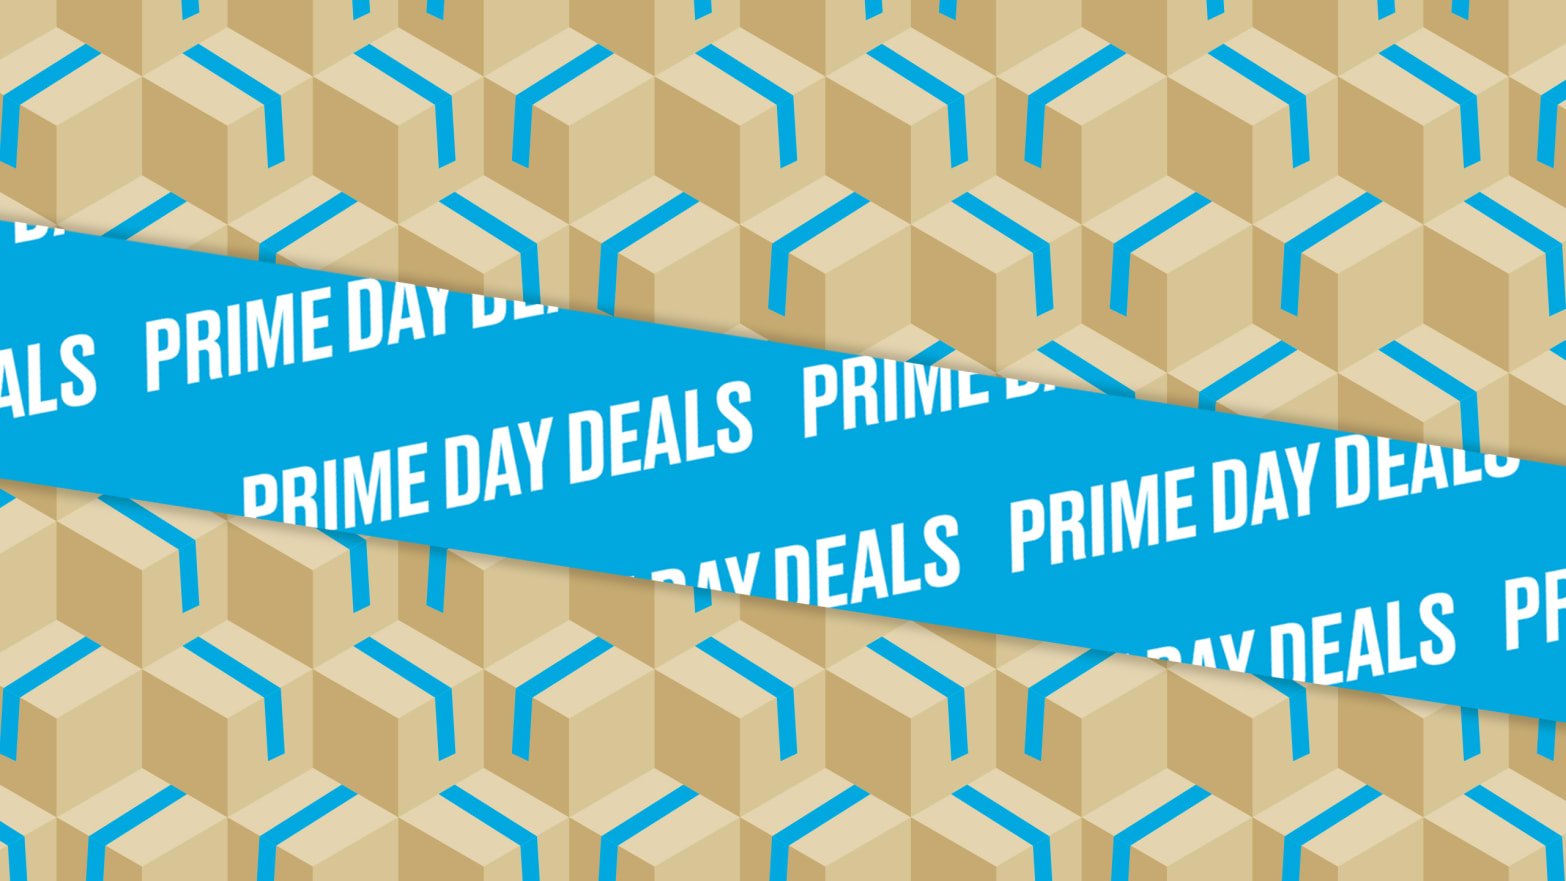 The 10 Best Prime Day Deals of 2019